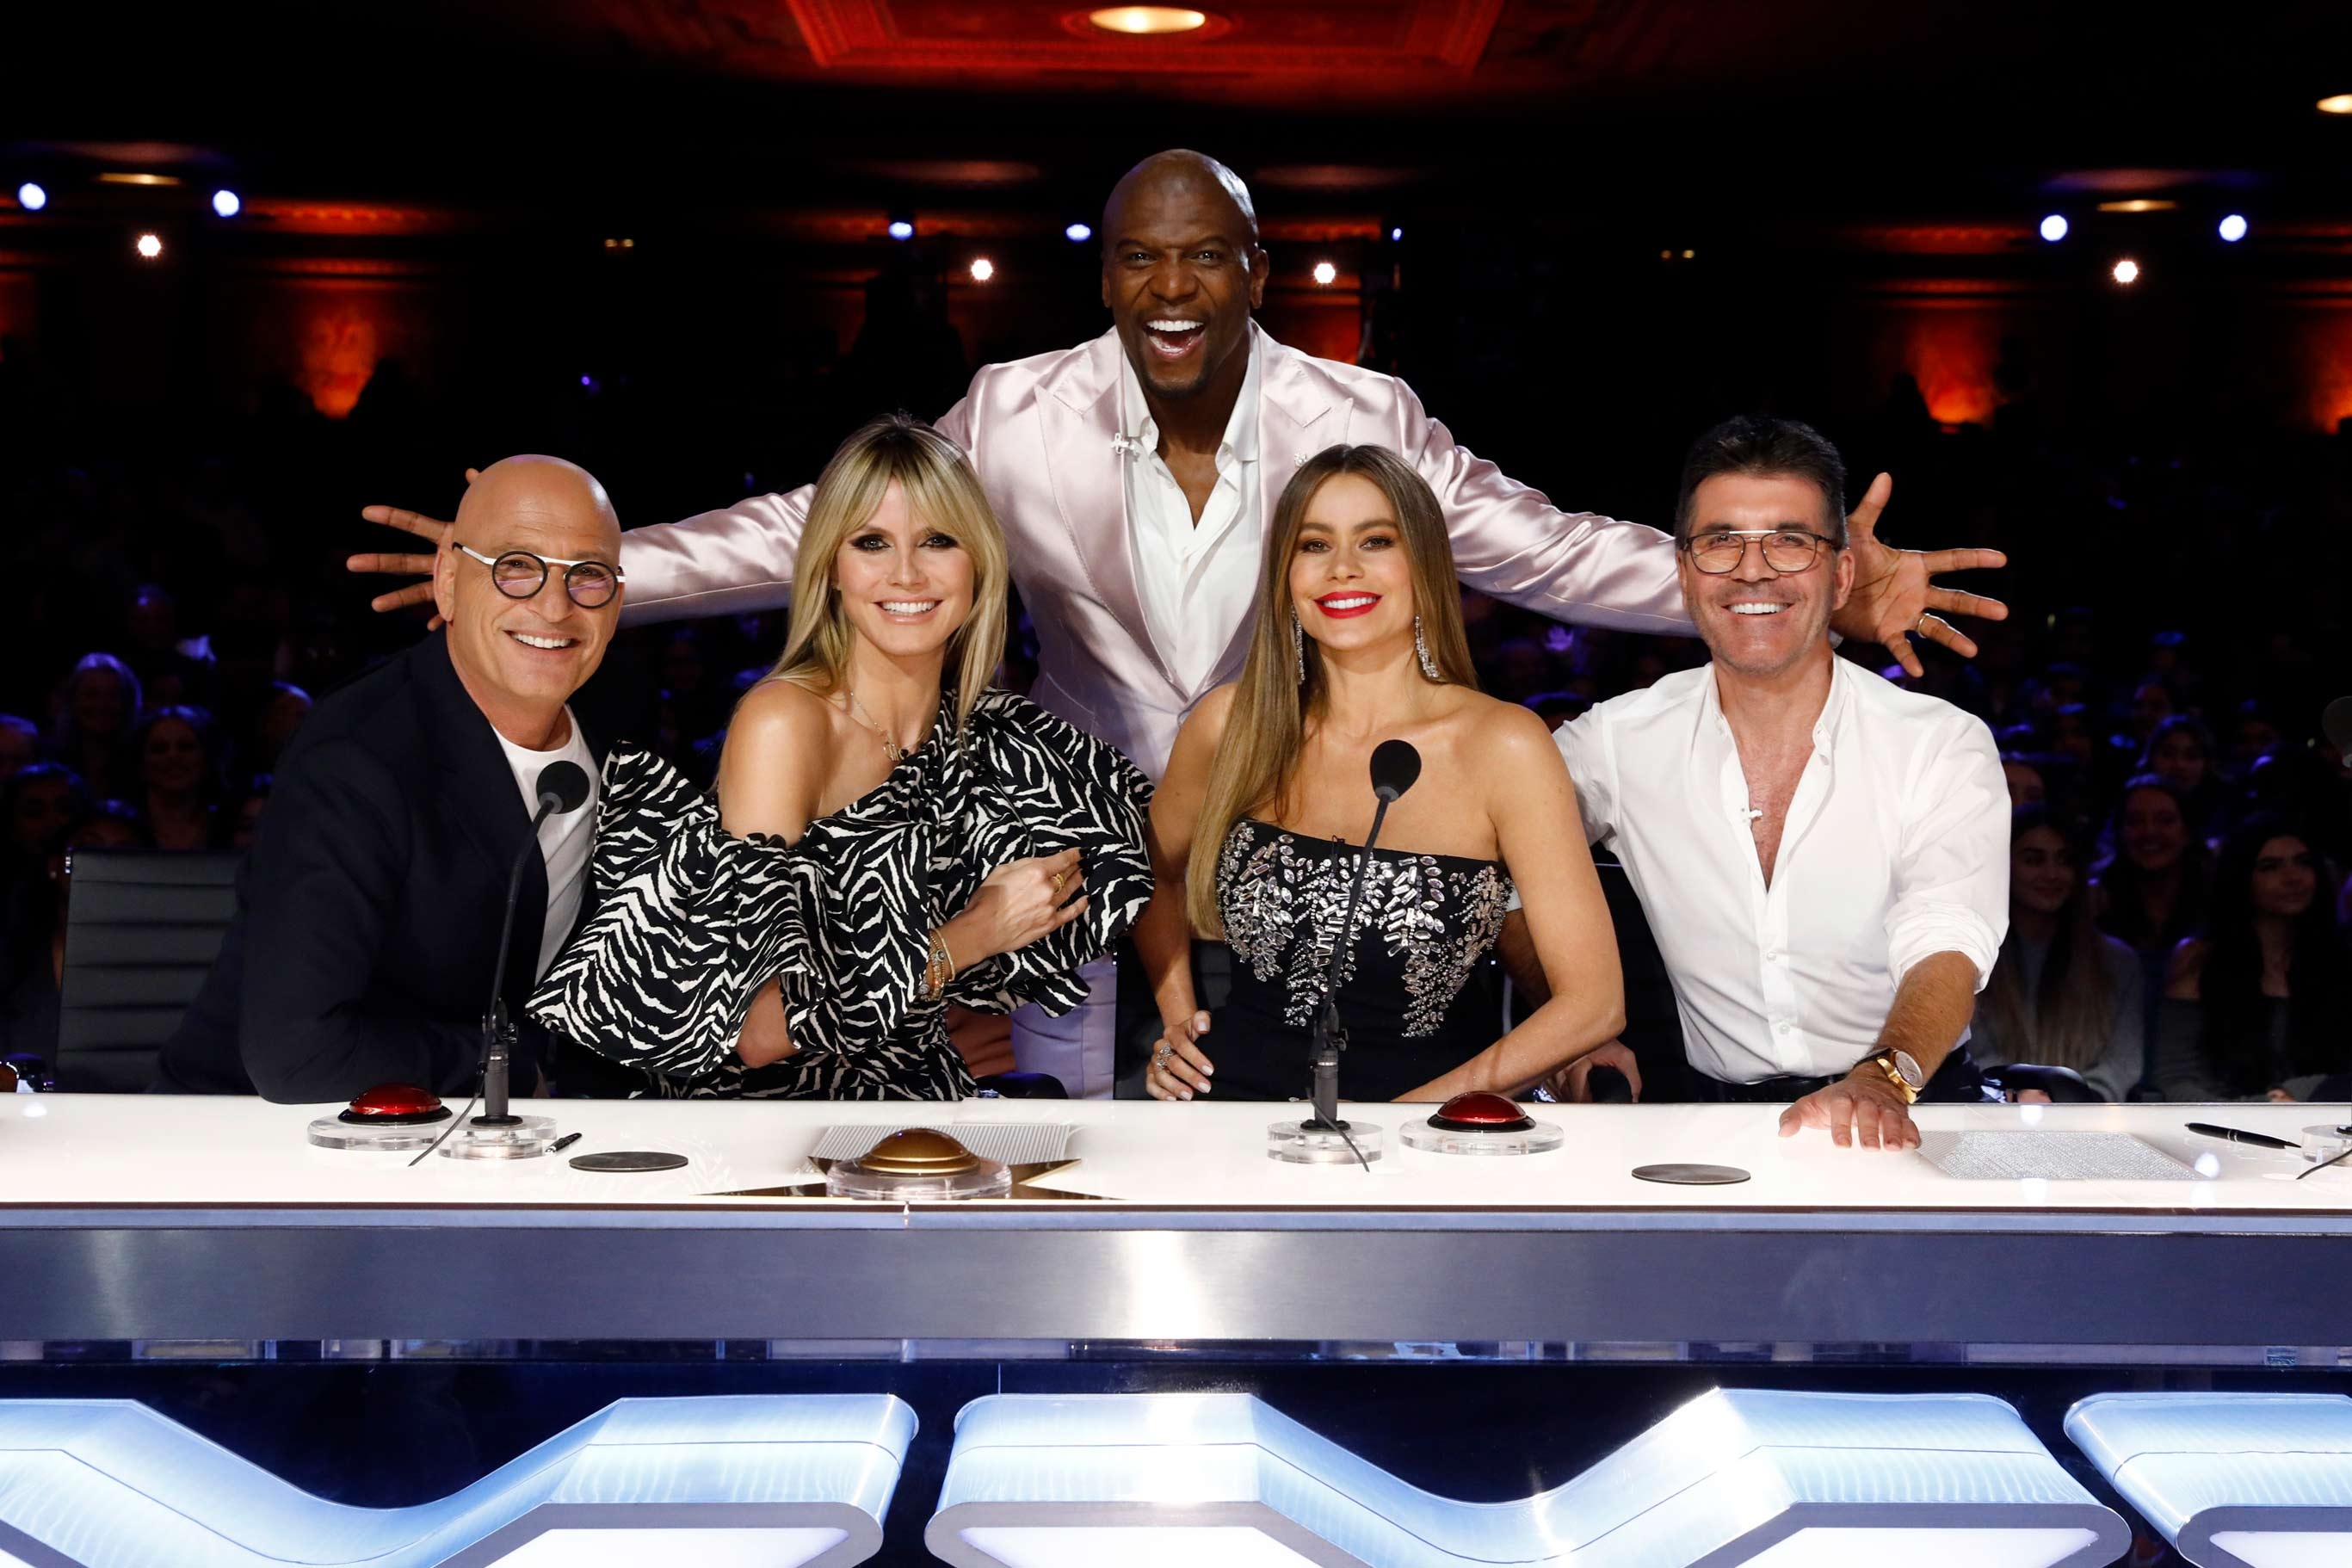 Heidi Klum And Sofia Vergara Wish Simon Cowell A Speedy Recovery From Agt Set After His Back Surgery Entertainment Tonight